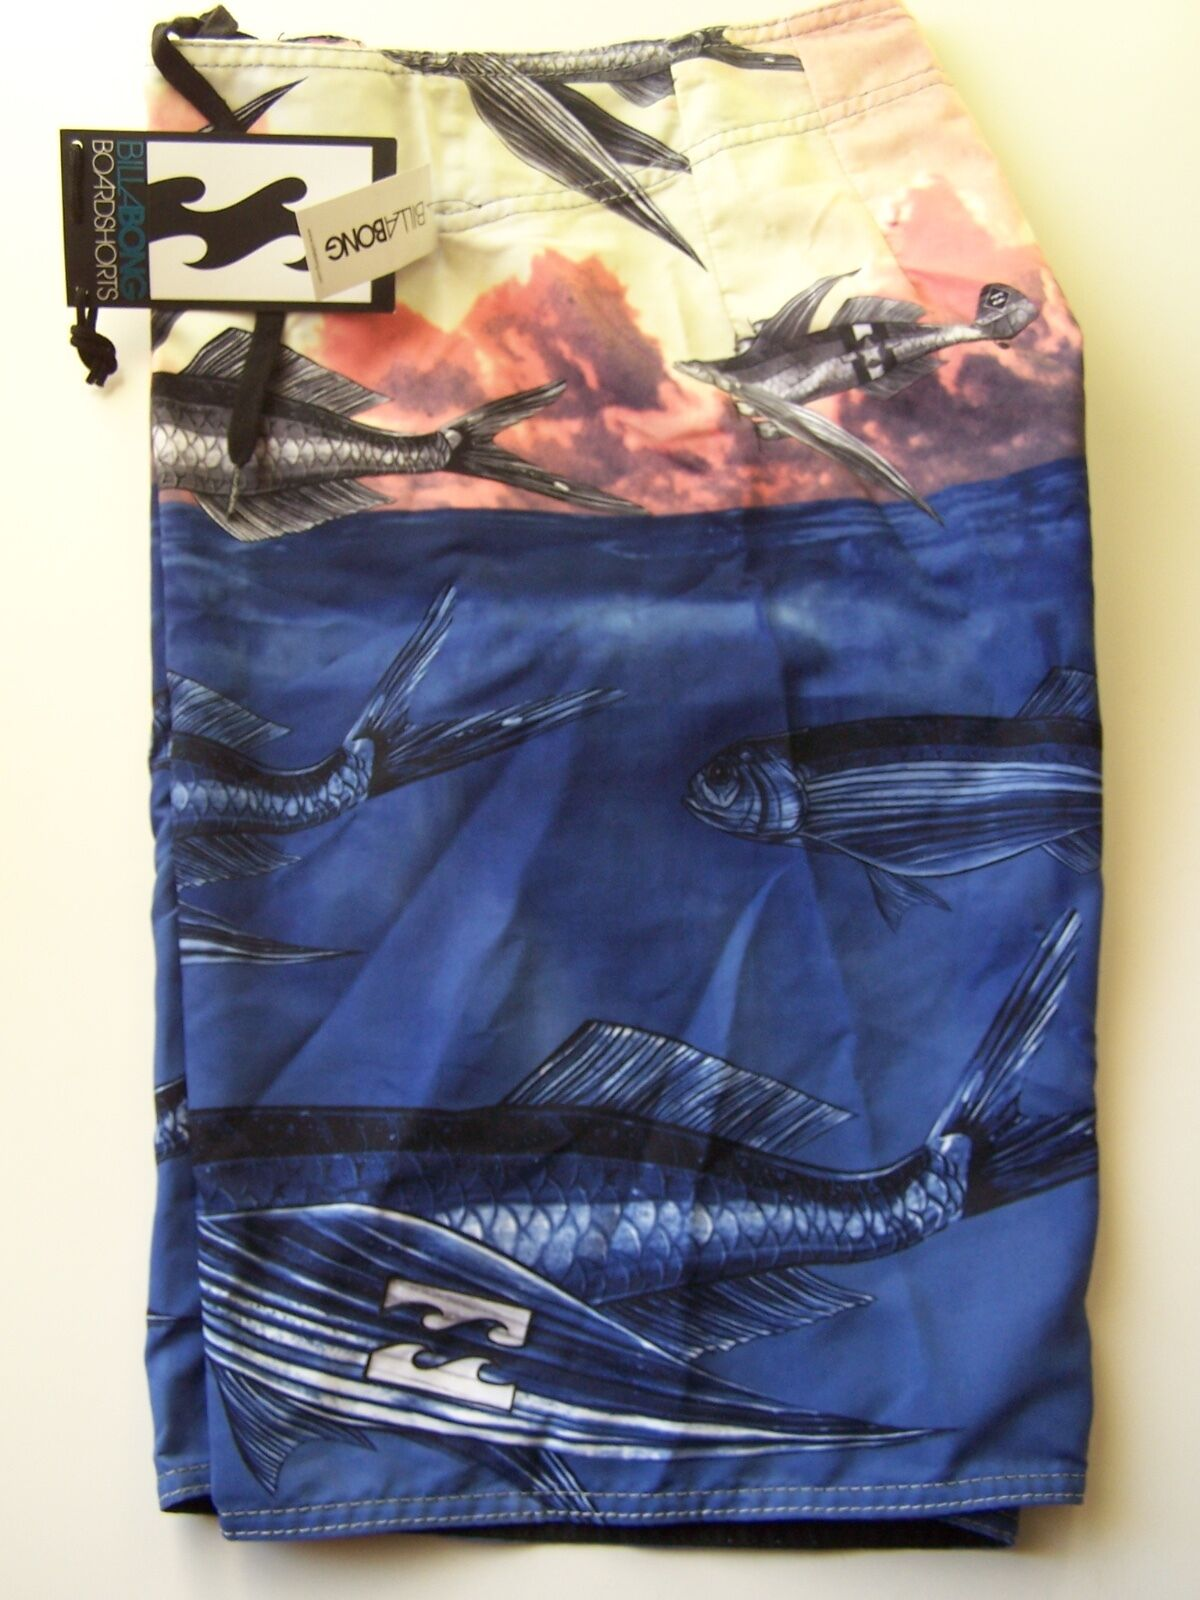 BILLABONG  FLY FISHING  MENS  BOARD SHORTS  SIZE  30